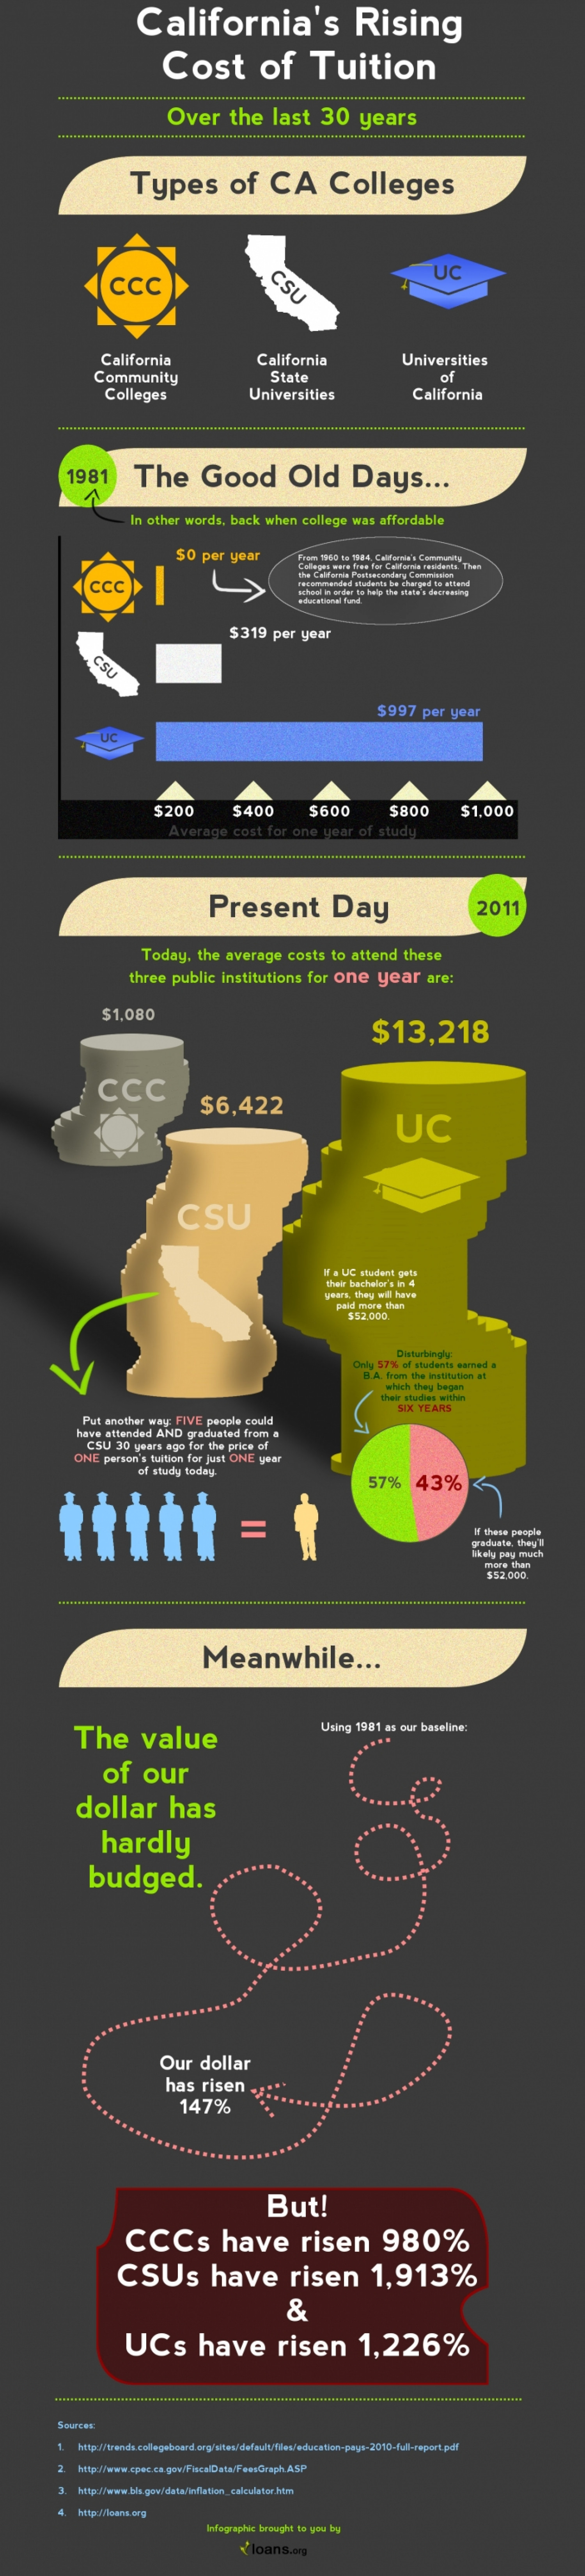 California's Rising Cost of Tuition Infographic